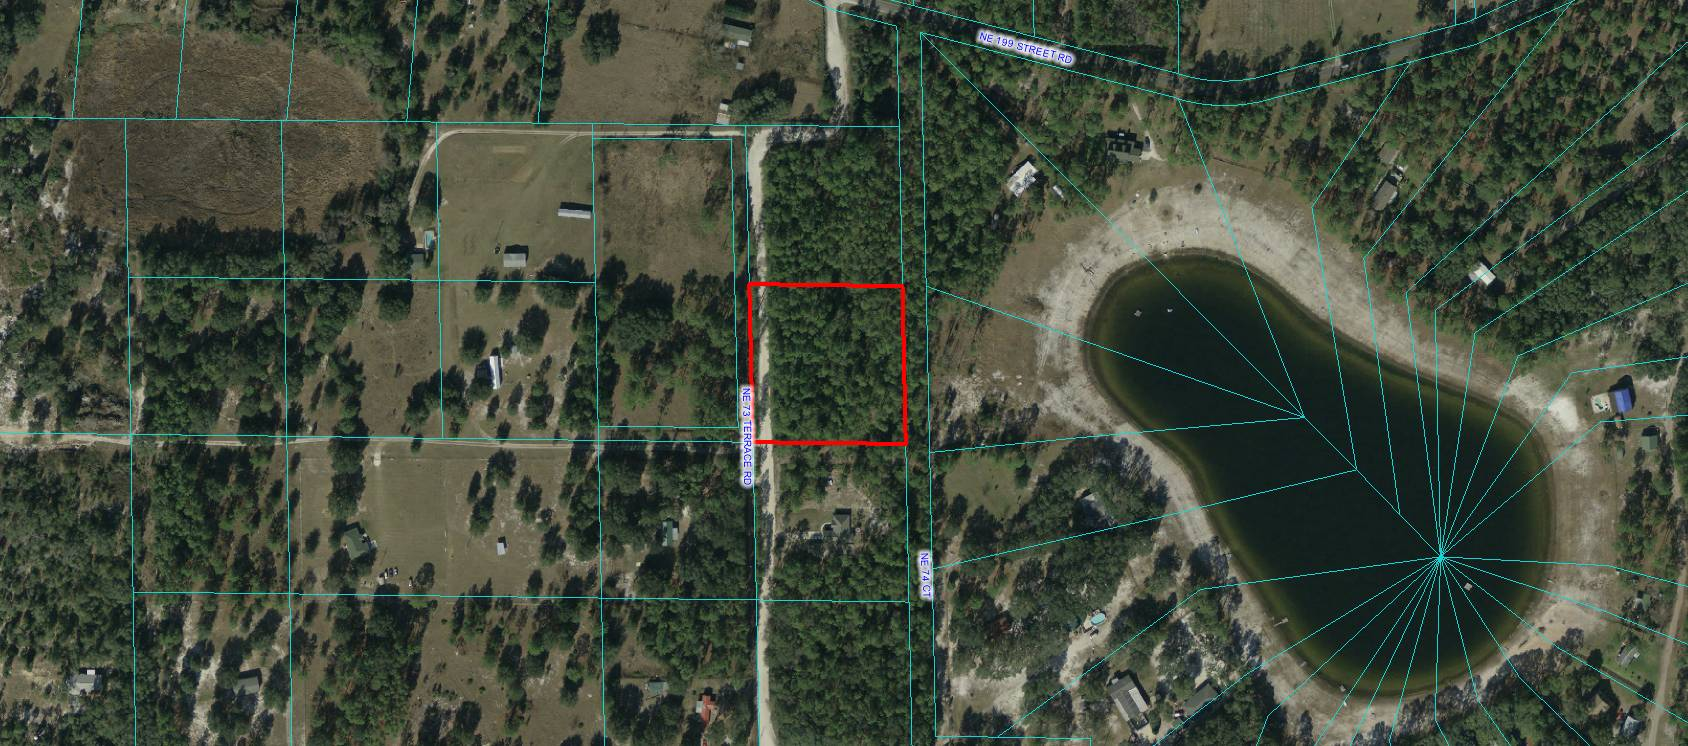 myLandBaron.com | 4+ Acres in Citra, Florida For Sale. Cheapest LOTs on